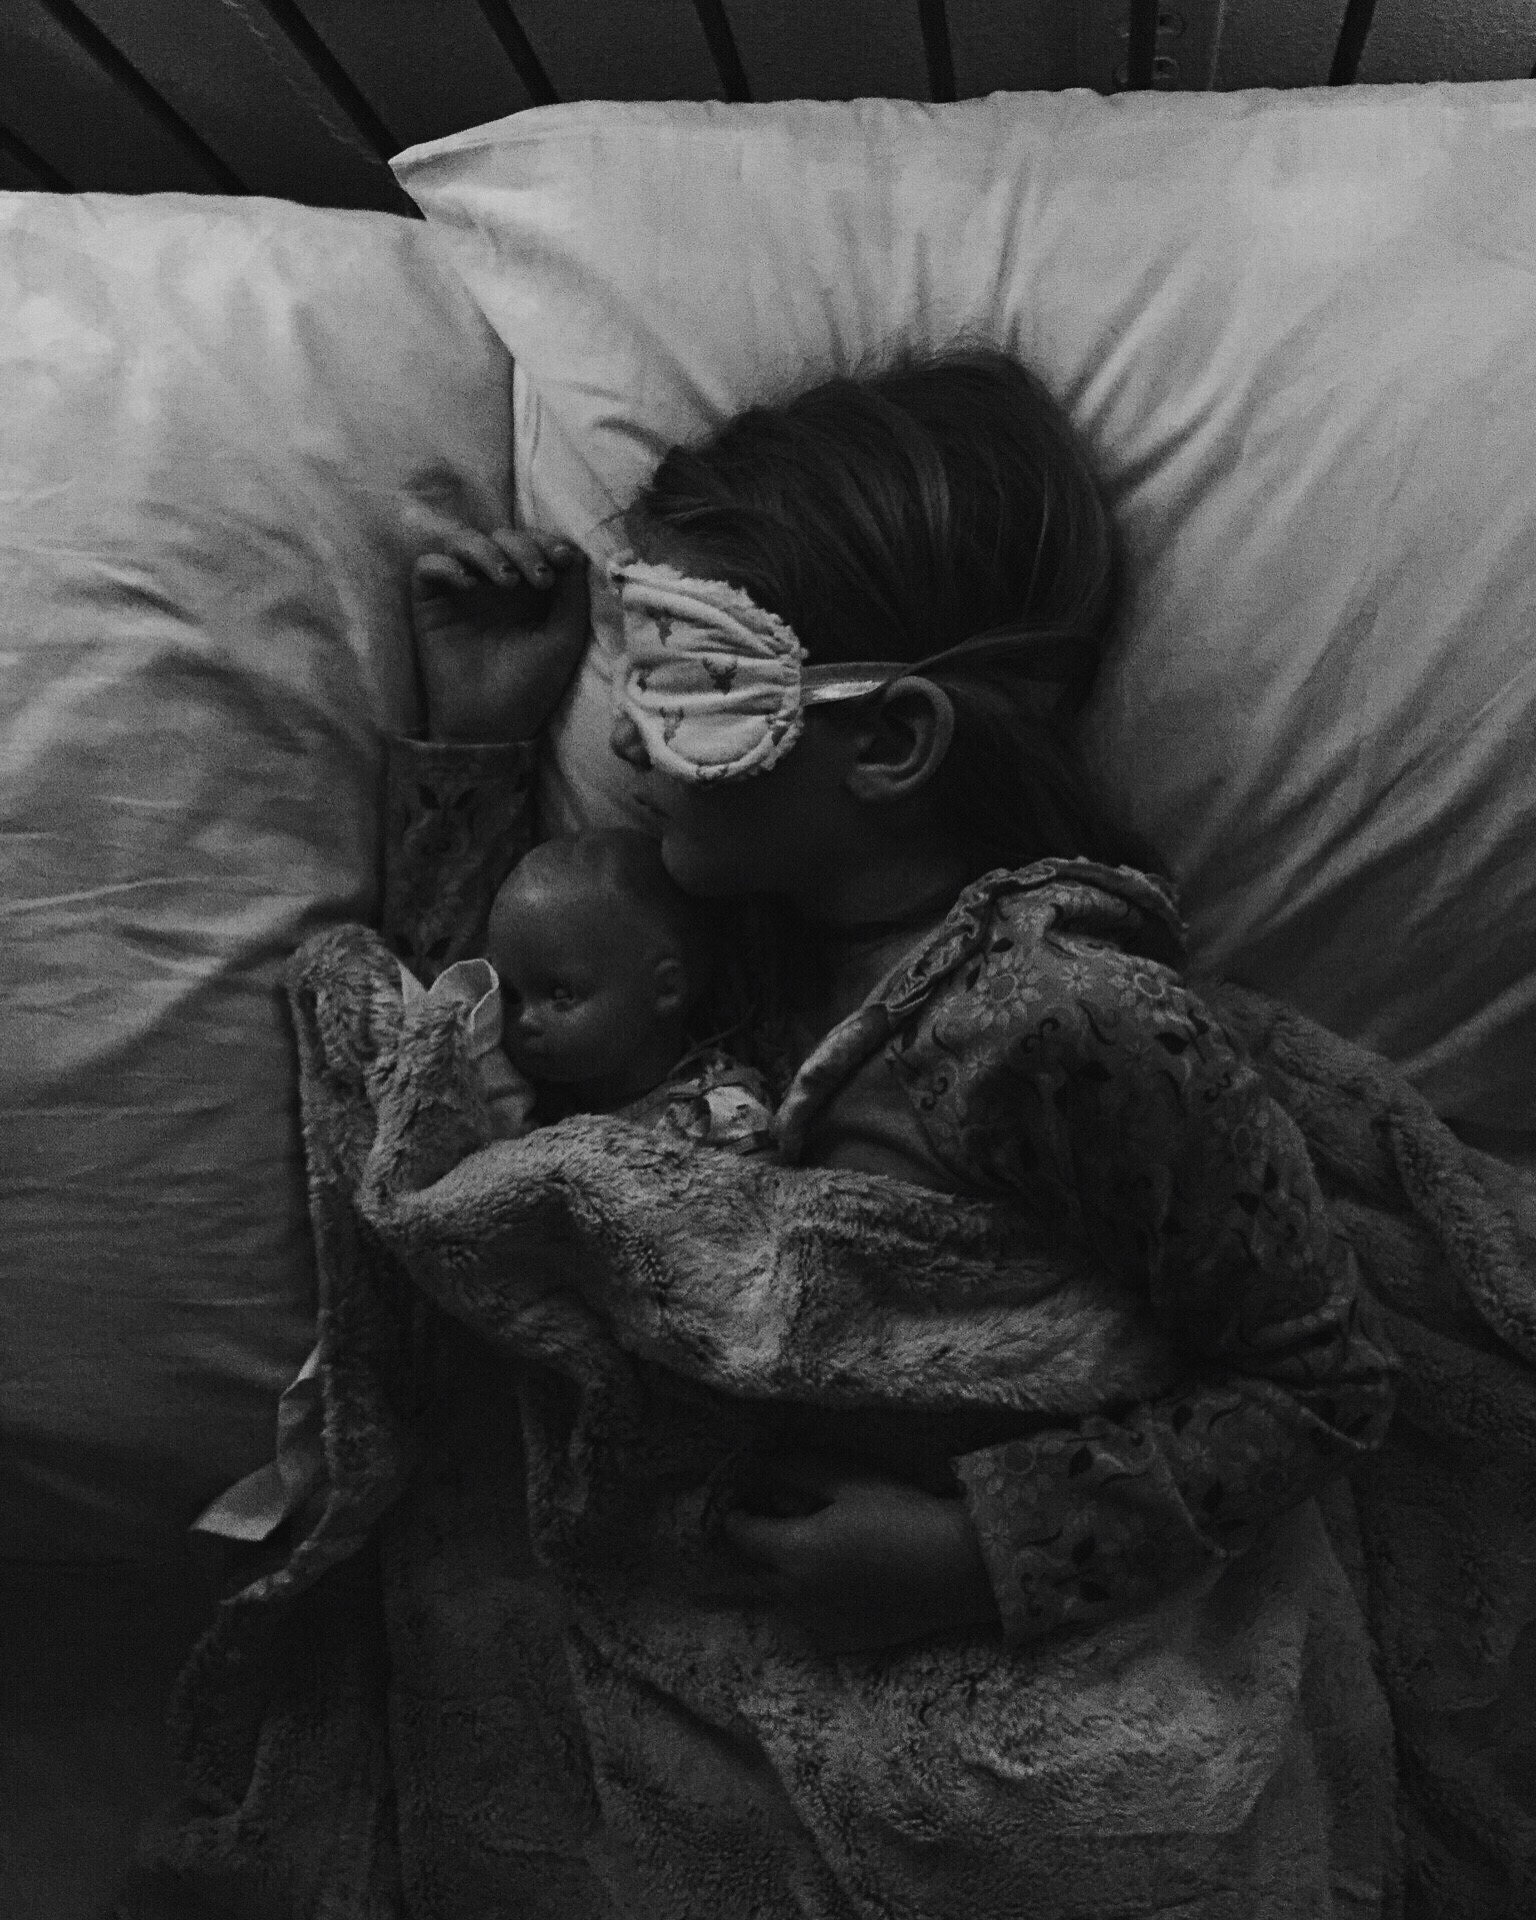 Sleeping with eye masks